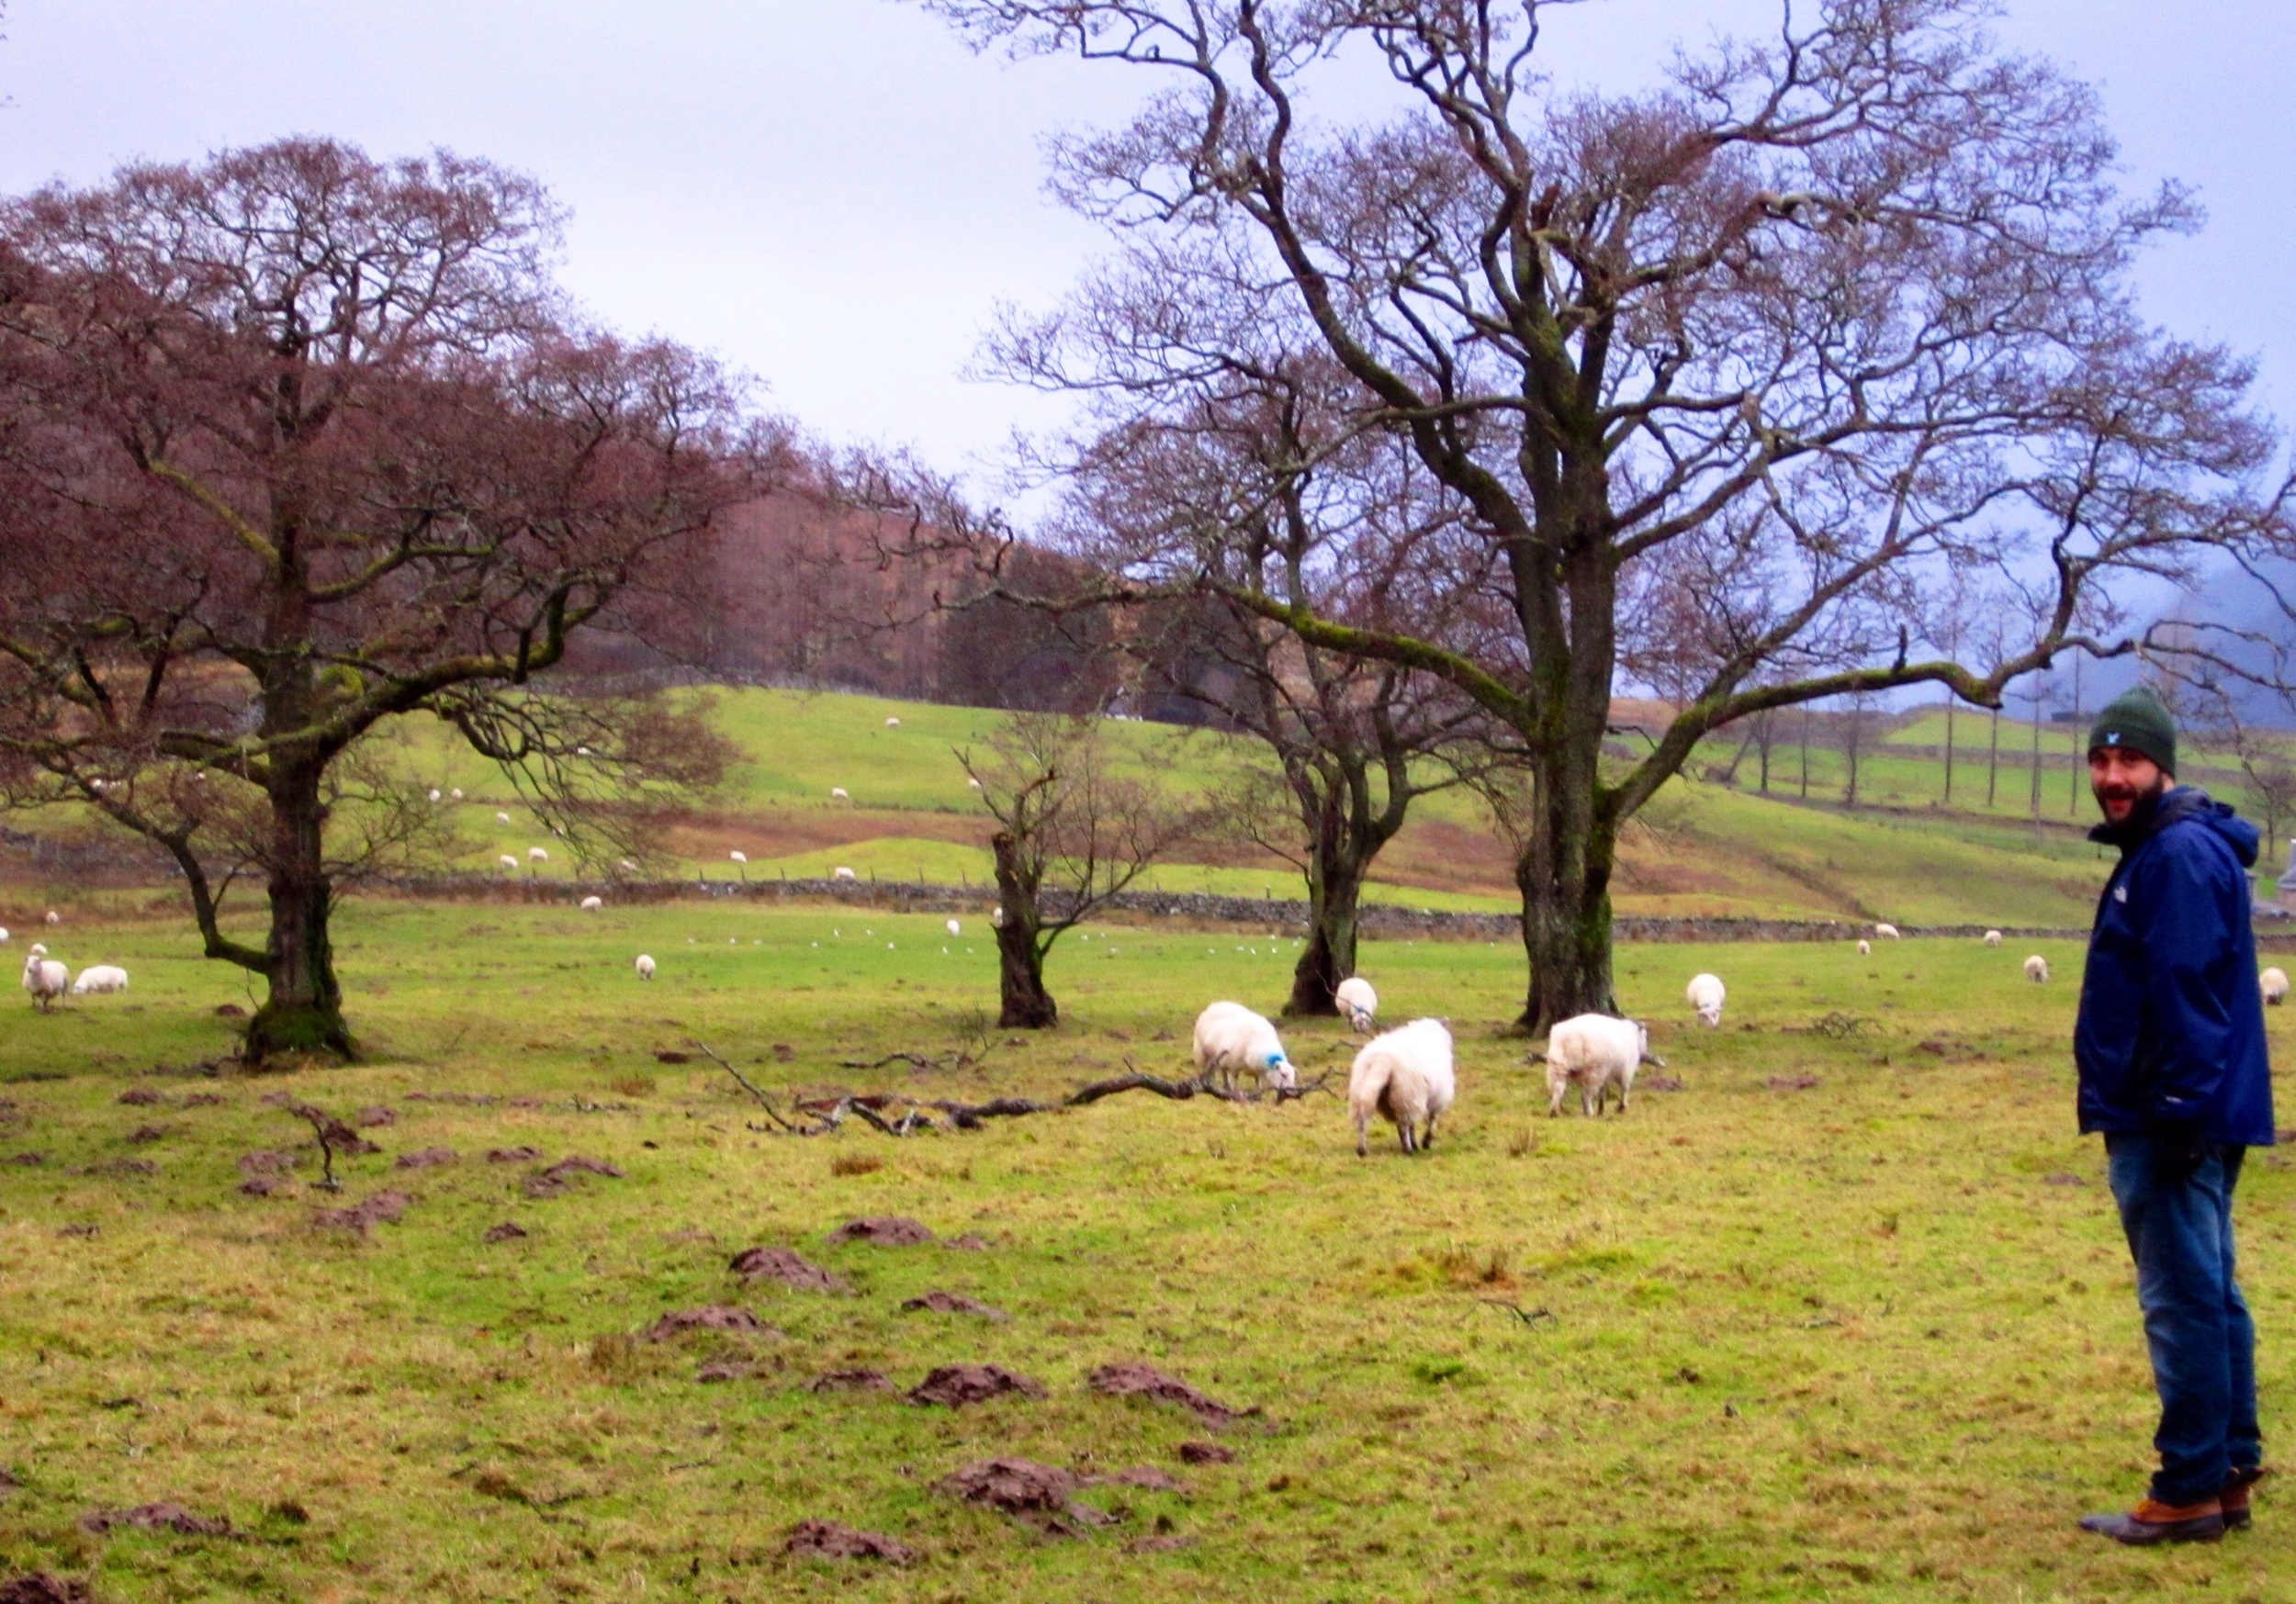 The Scottish Access Code makes for all land to be accessible to walkers, meaning we could walk right up on as many sheep as wedesired - and we did!!